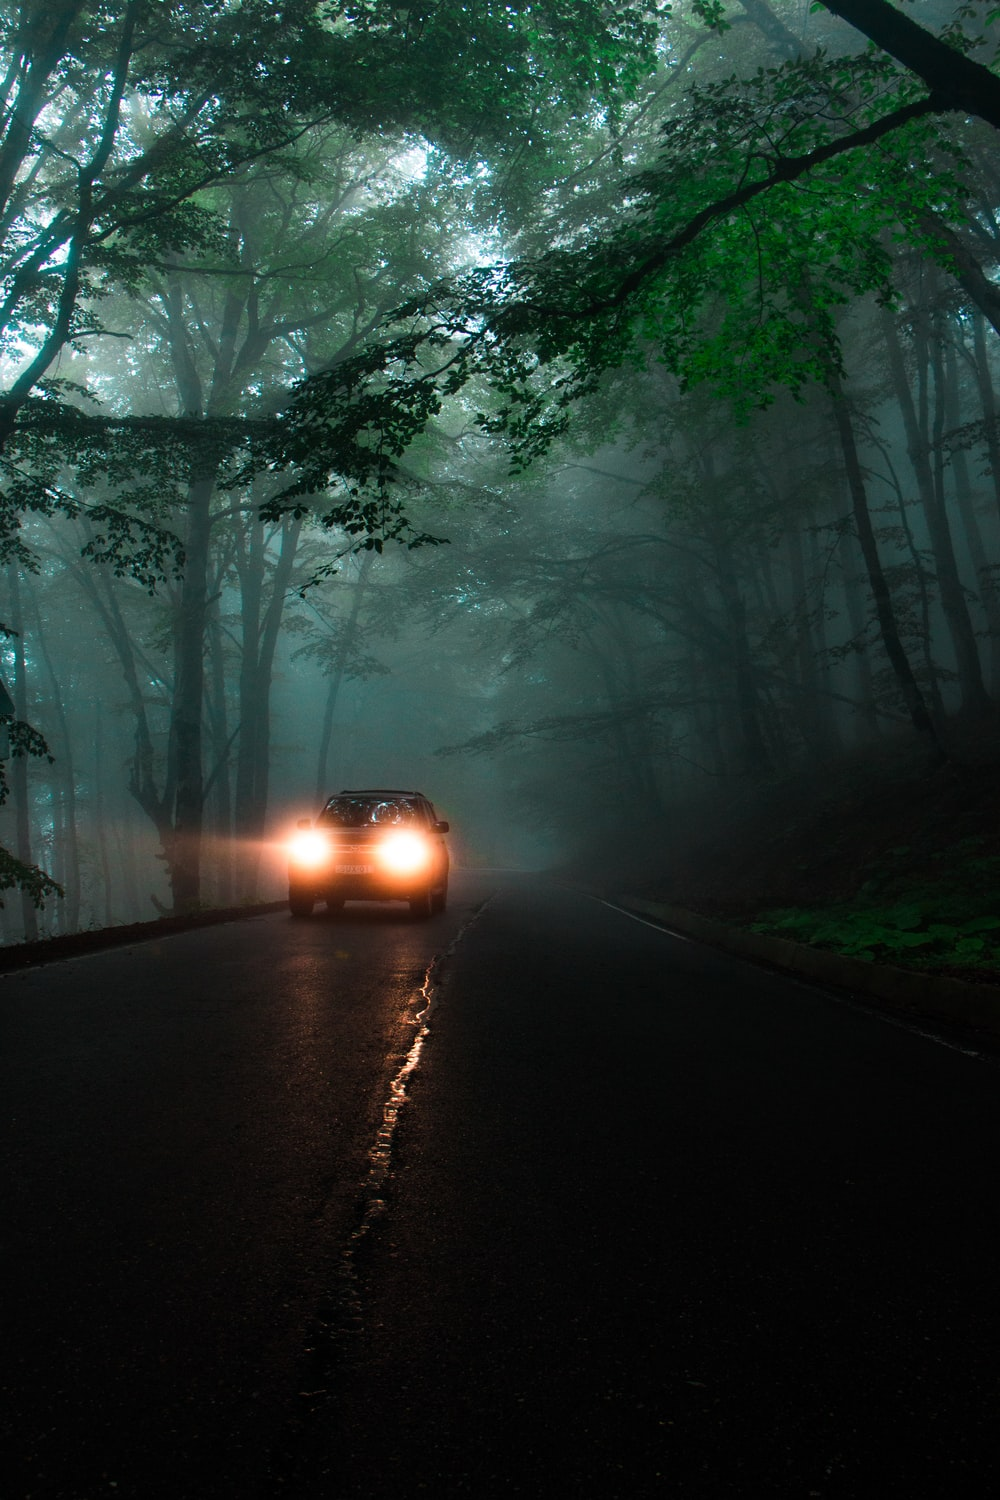 car running on road between trees during daytime